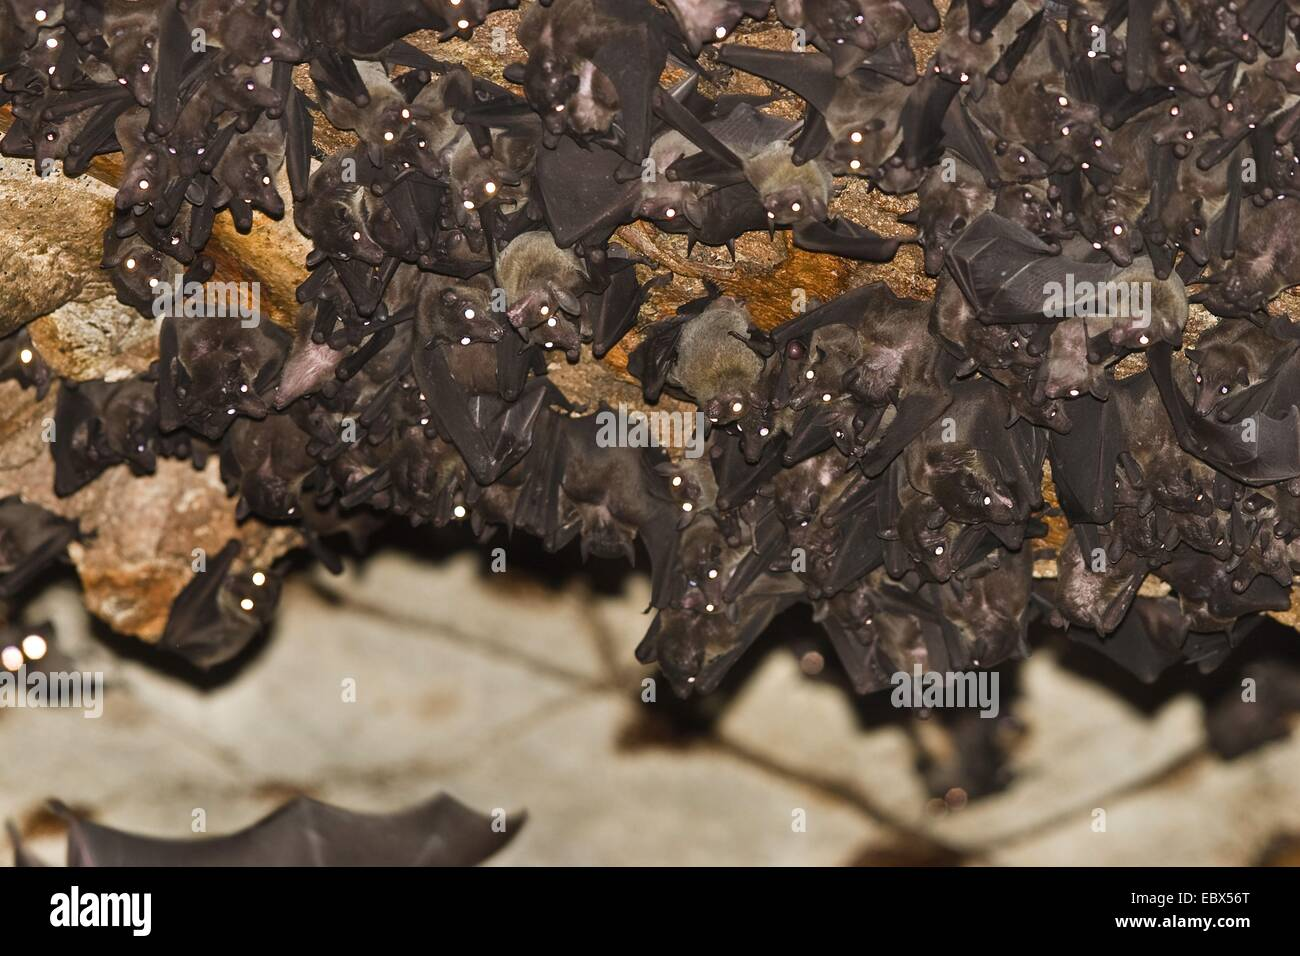 Flughunde in Hoehle (Eonycteris spelaea), Dobson's long-tounged Dawn Bats in cave, India, Andaman Islands, North - Stock Image